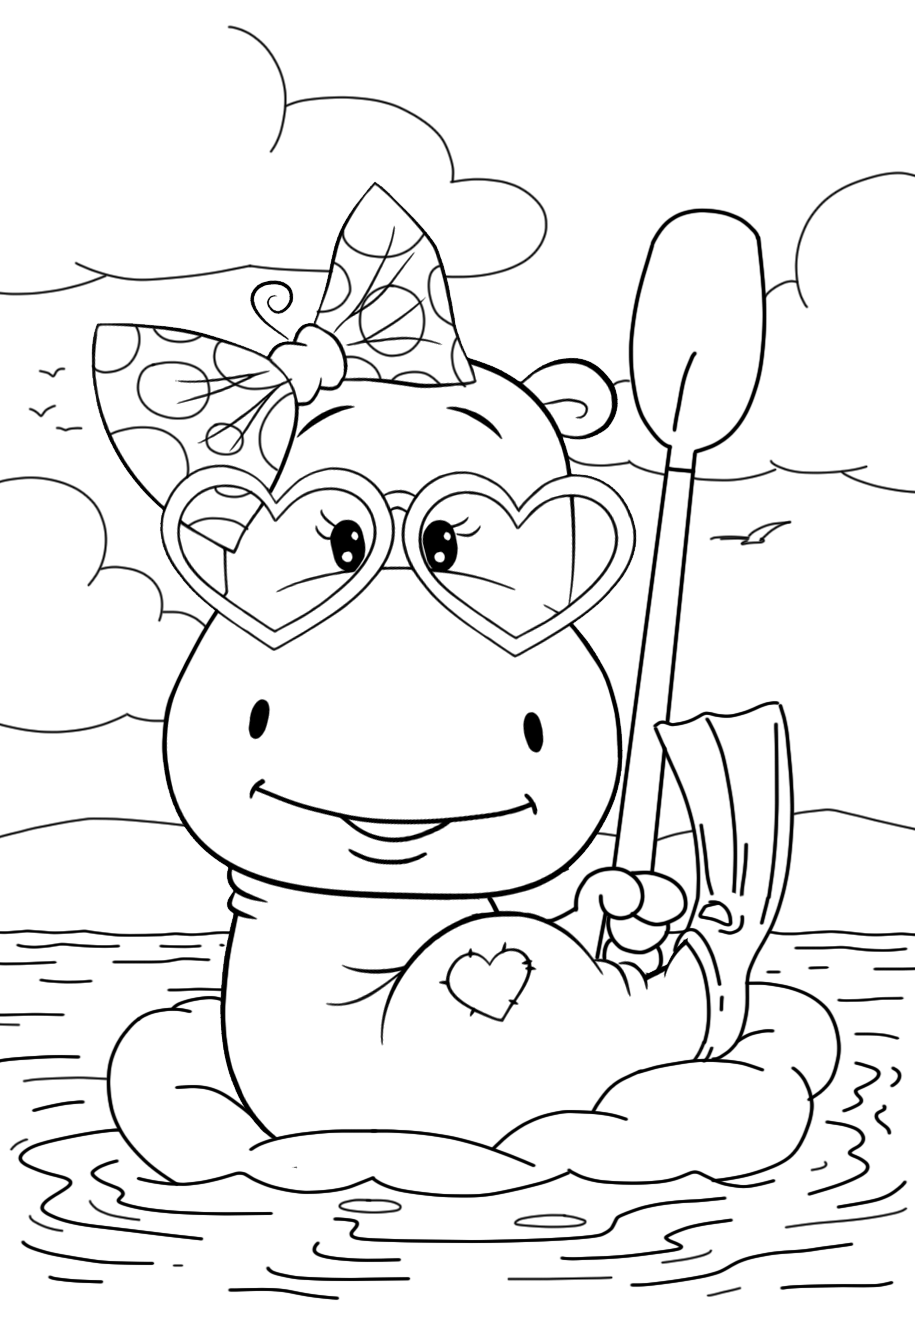 Hippo resting - Coloring pages for you